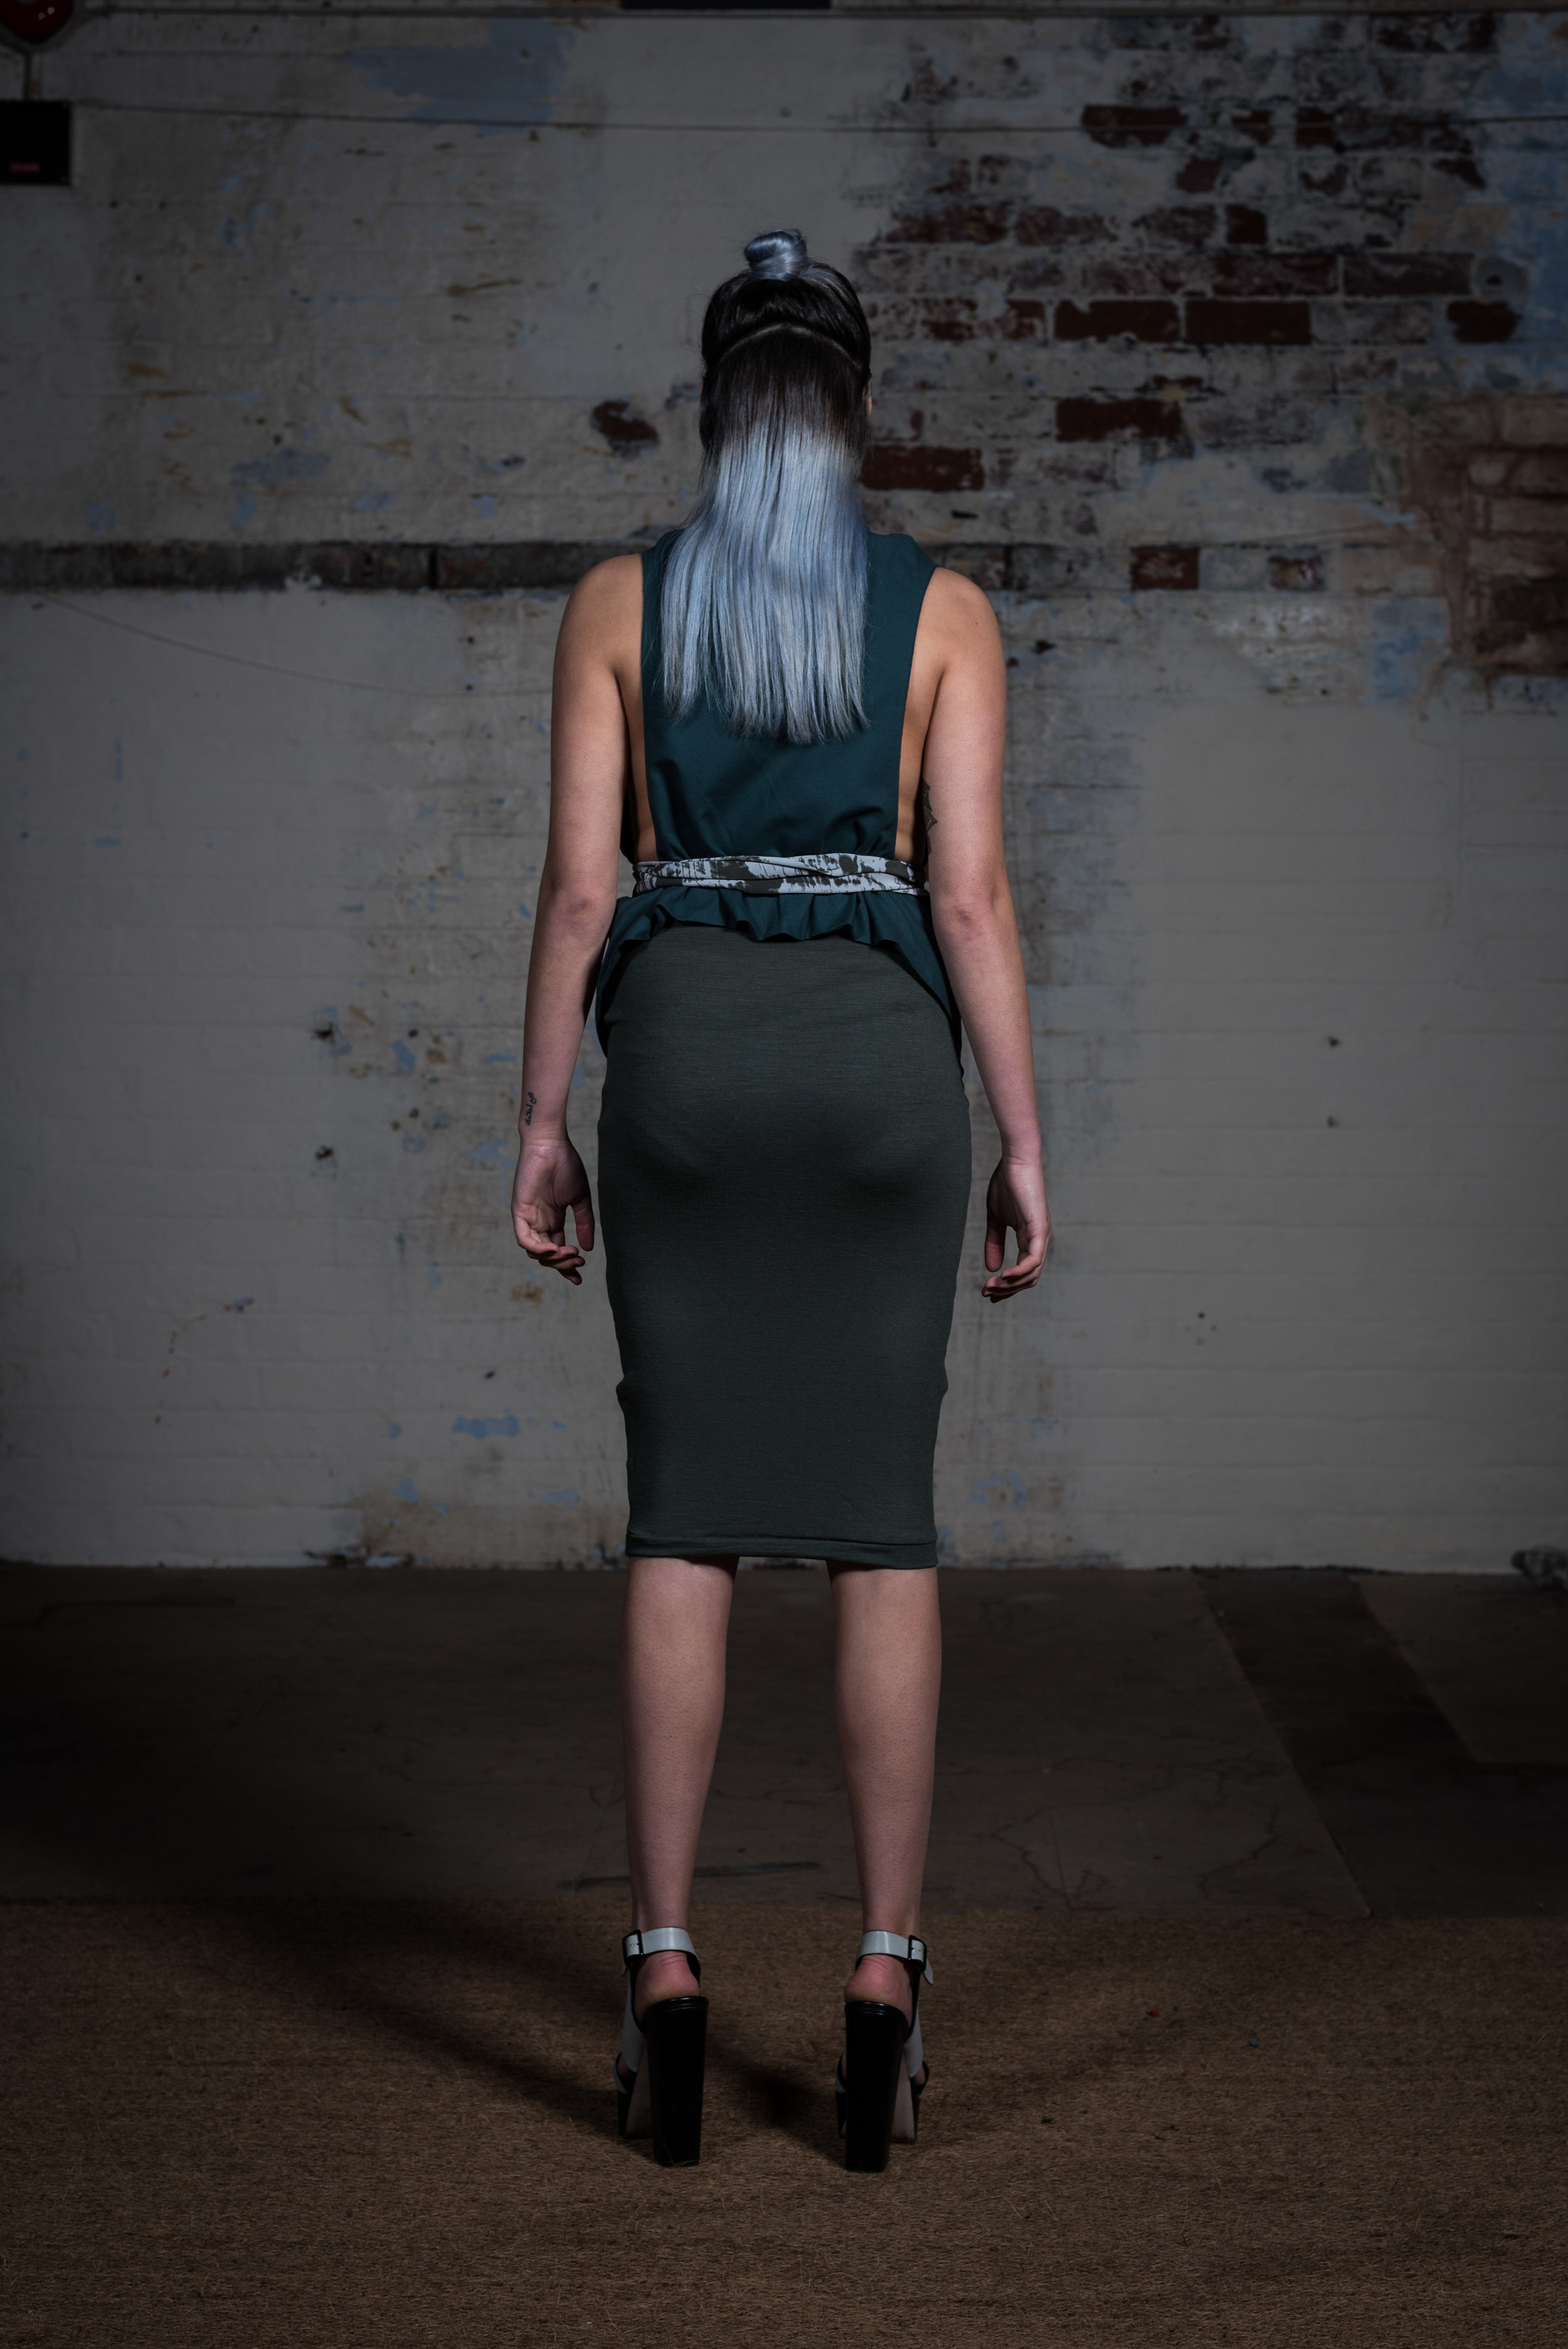 zaramia-ava-zaramiaava-leeds-fashion-designer-ethical-sustainable-teal-wrap-top-versatile-drape-skirt-grey-yuko-cowl-dress-styling-location-womenswear-models-photoshoot-2